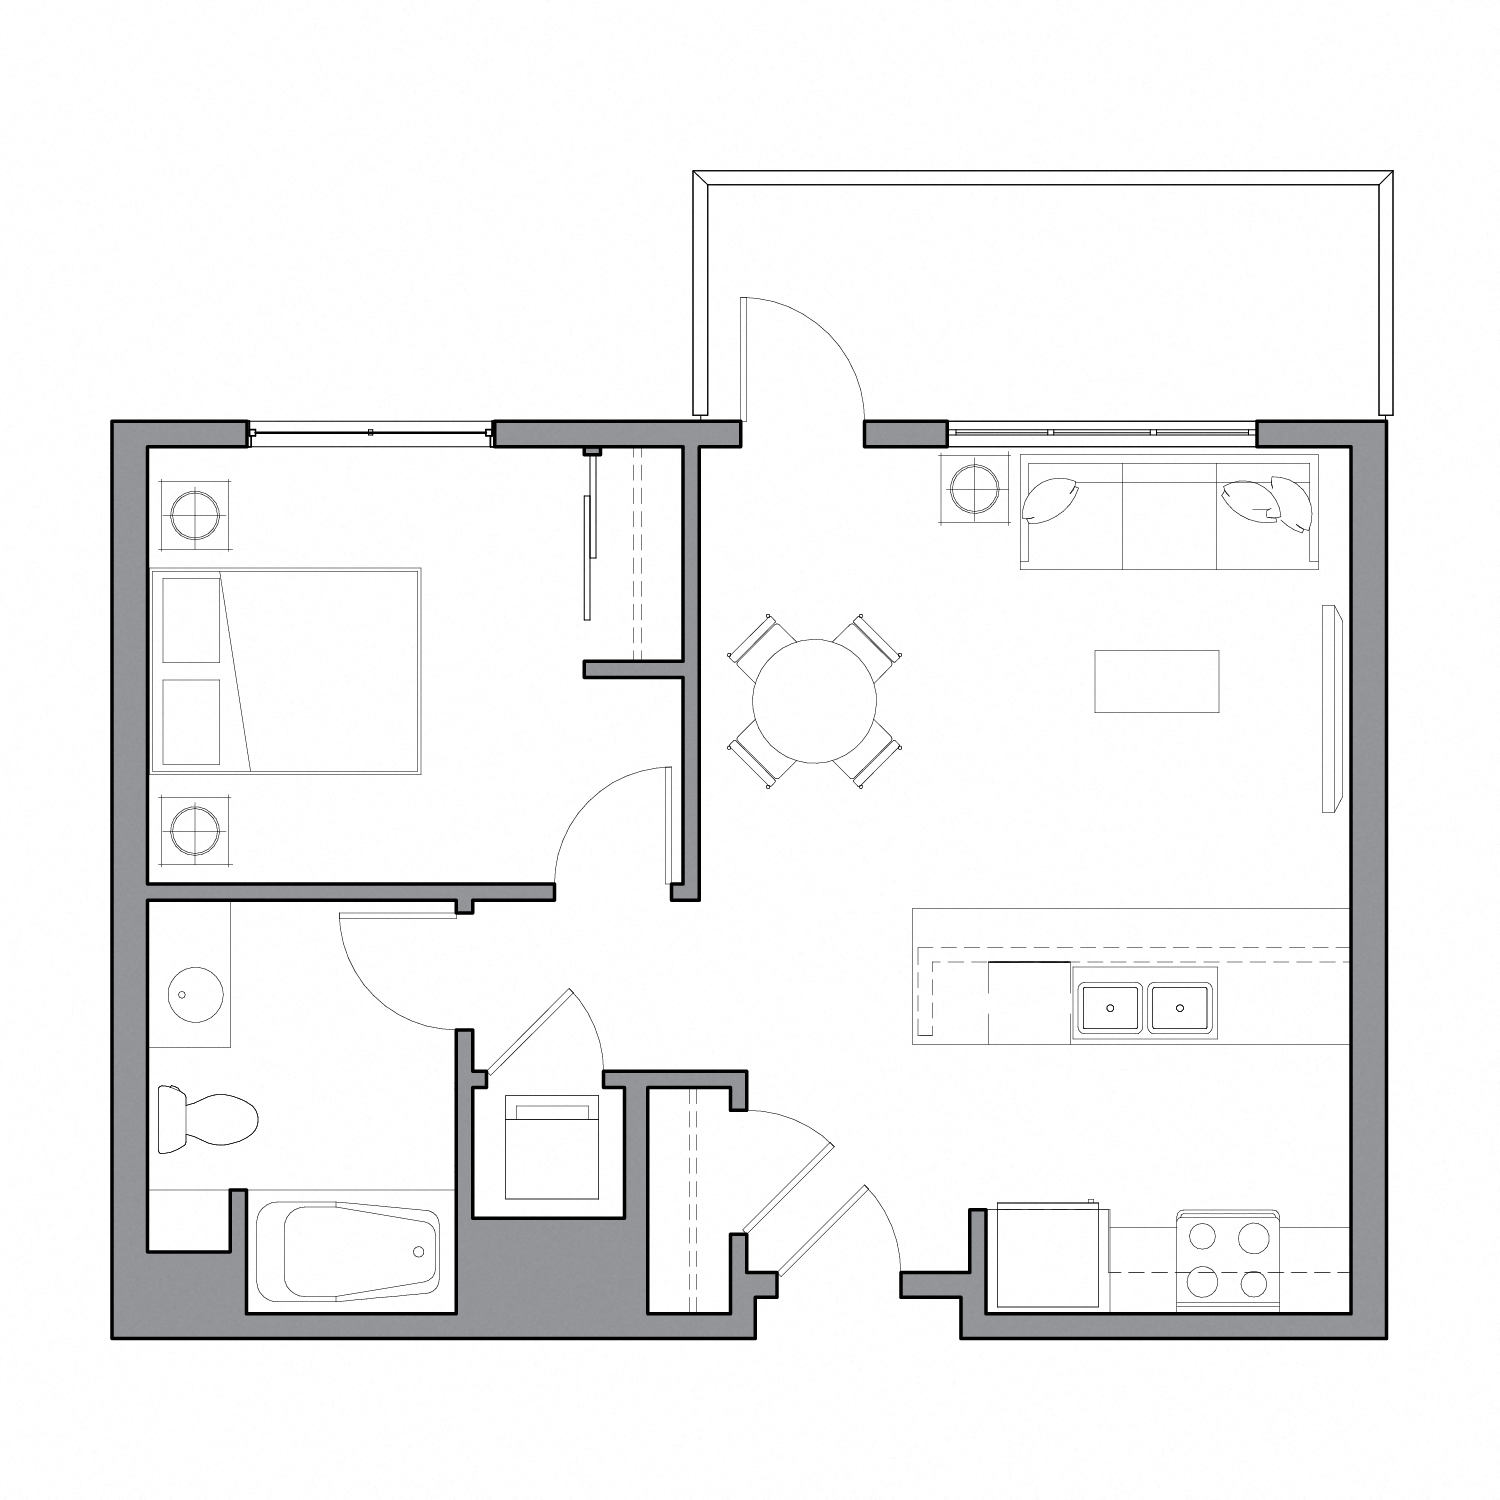 Floor plan diagram with one bedroom, one bathroom, an open kitchen dining and living space, and a patio